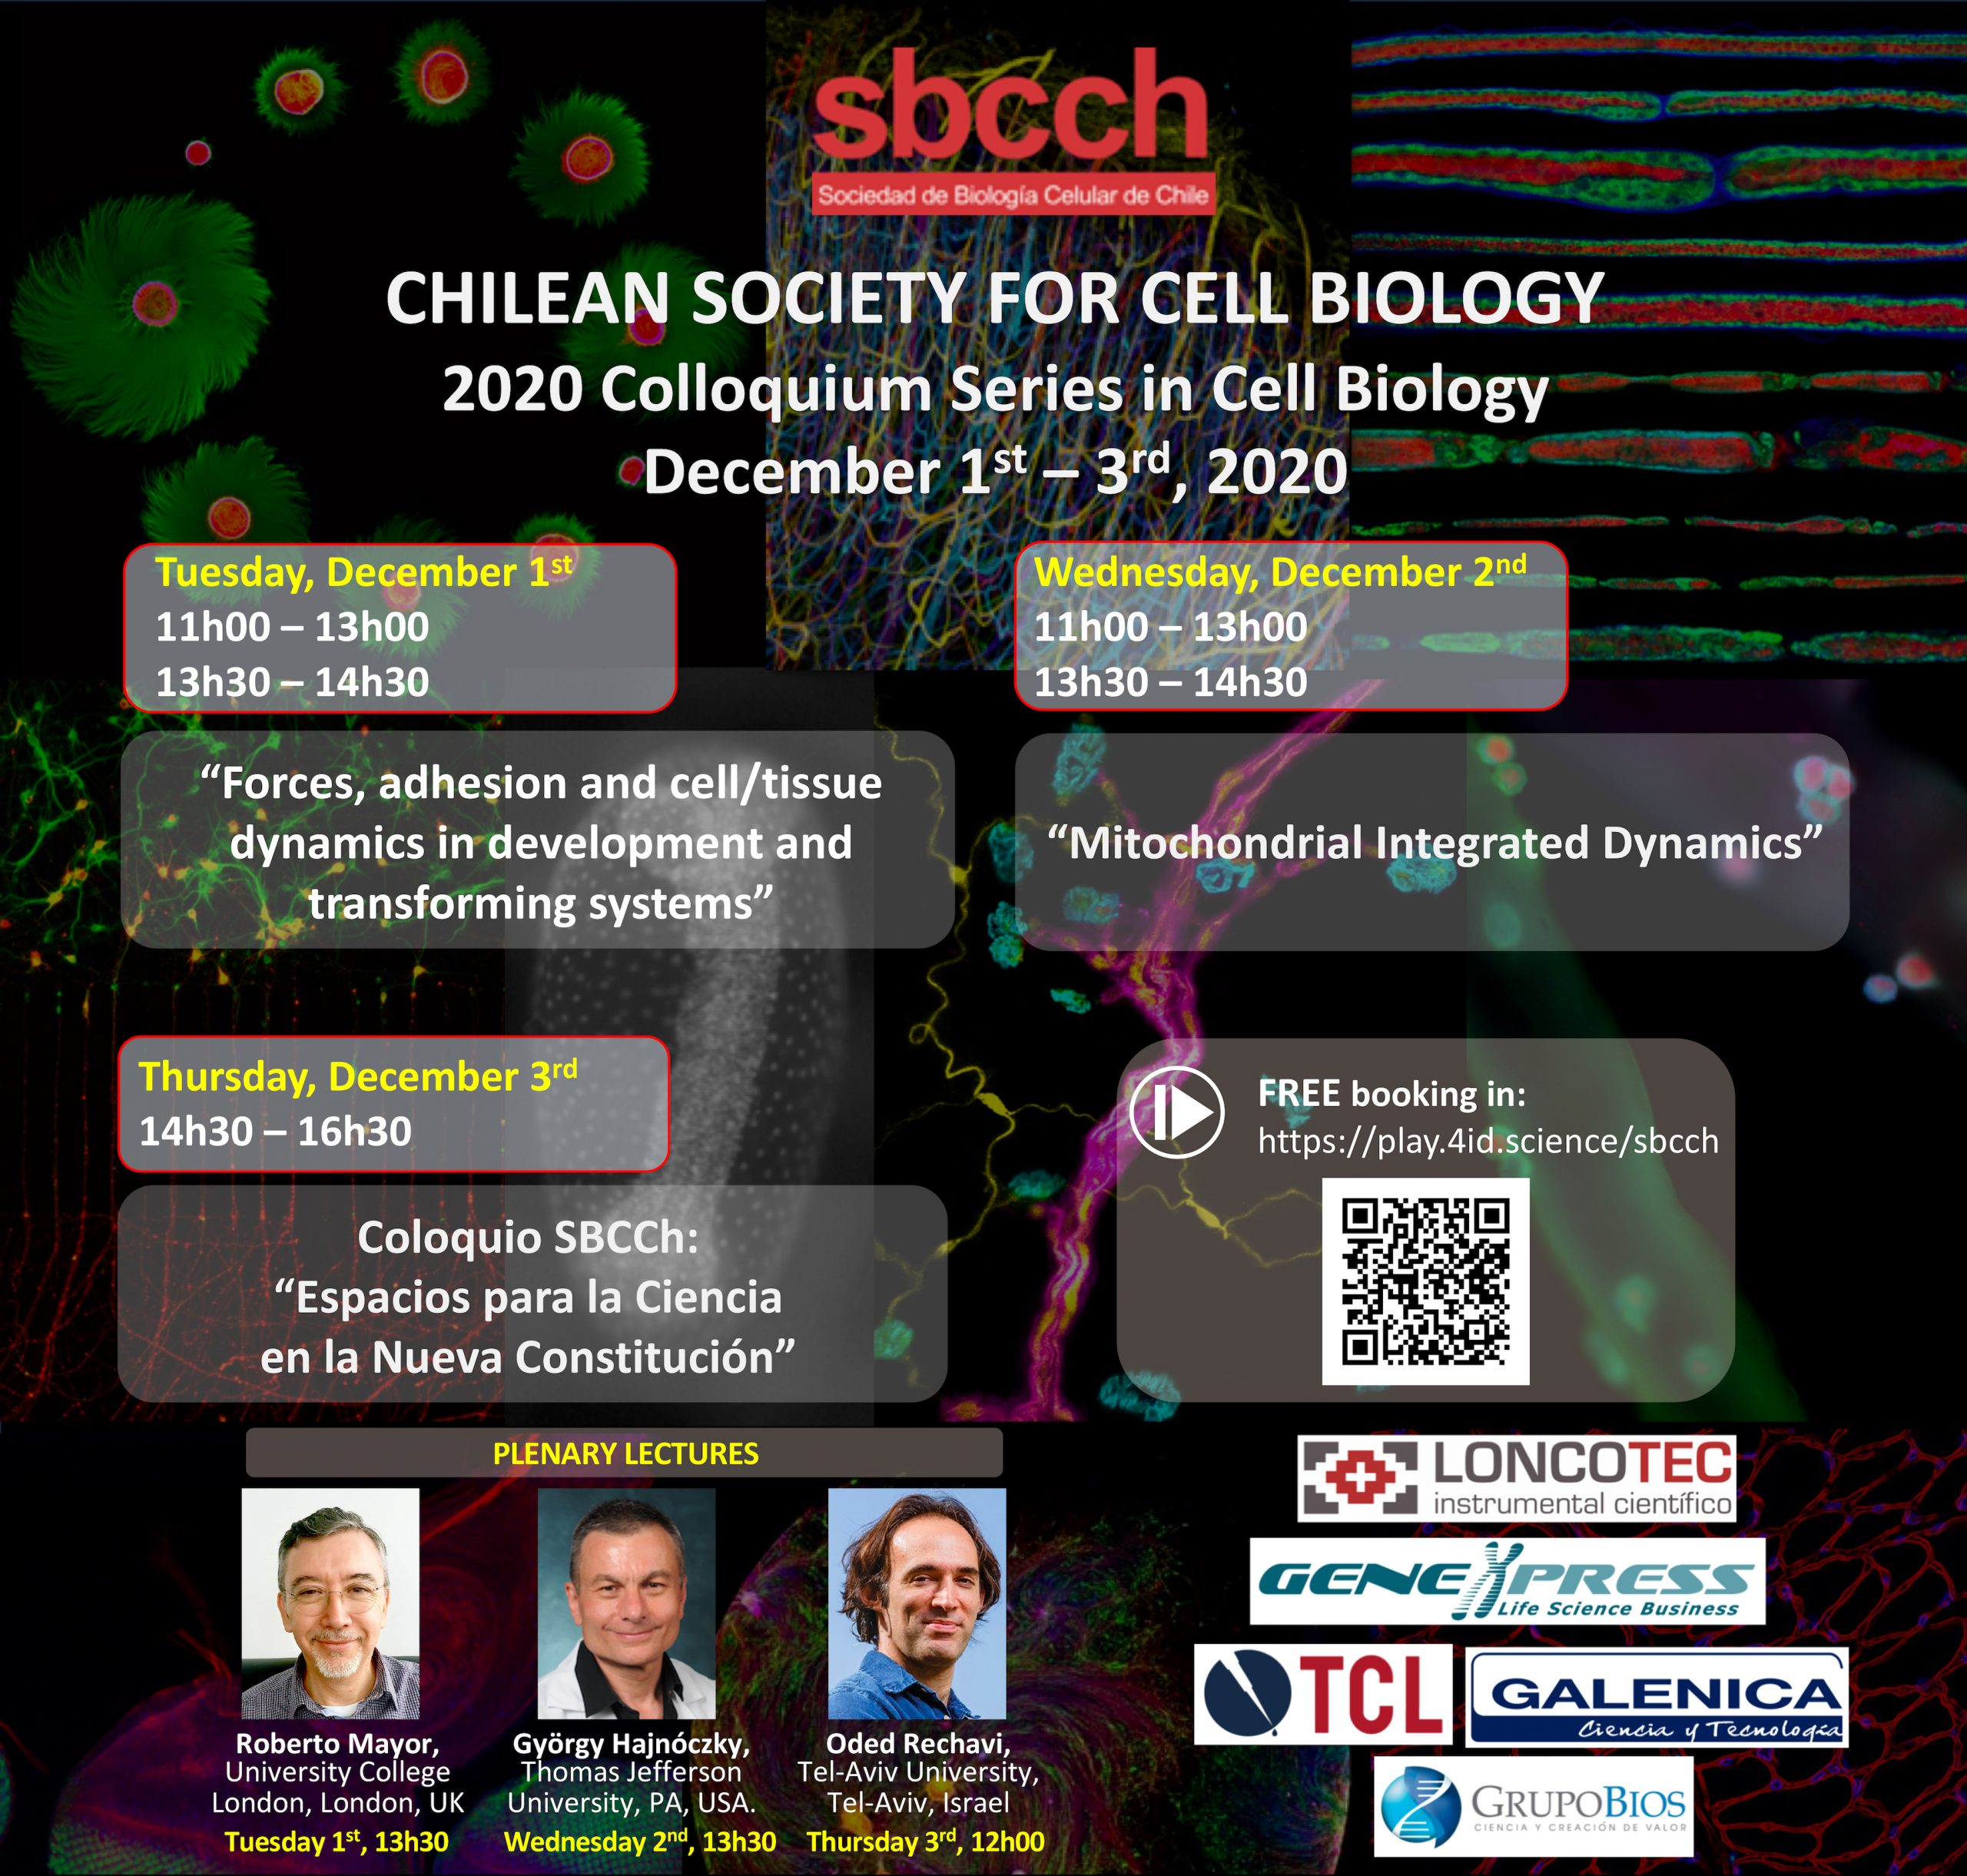 2020 Colloquium Series in Cell Biology